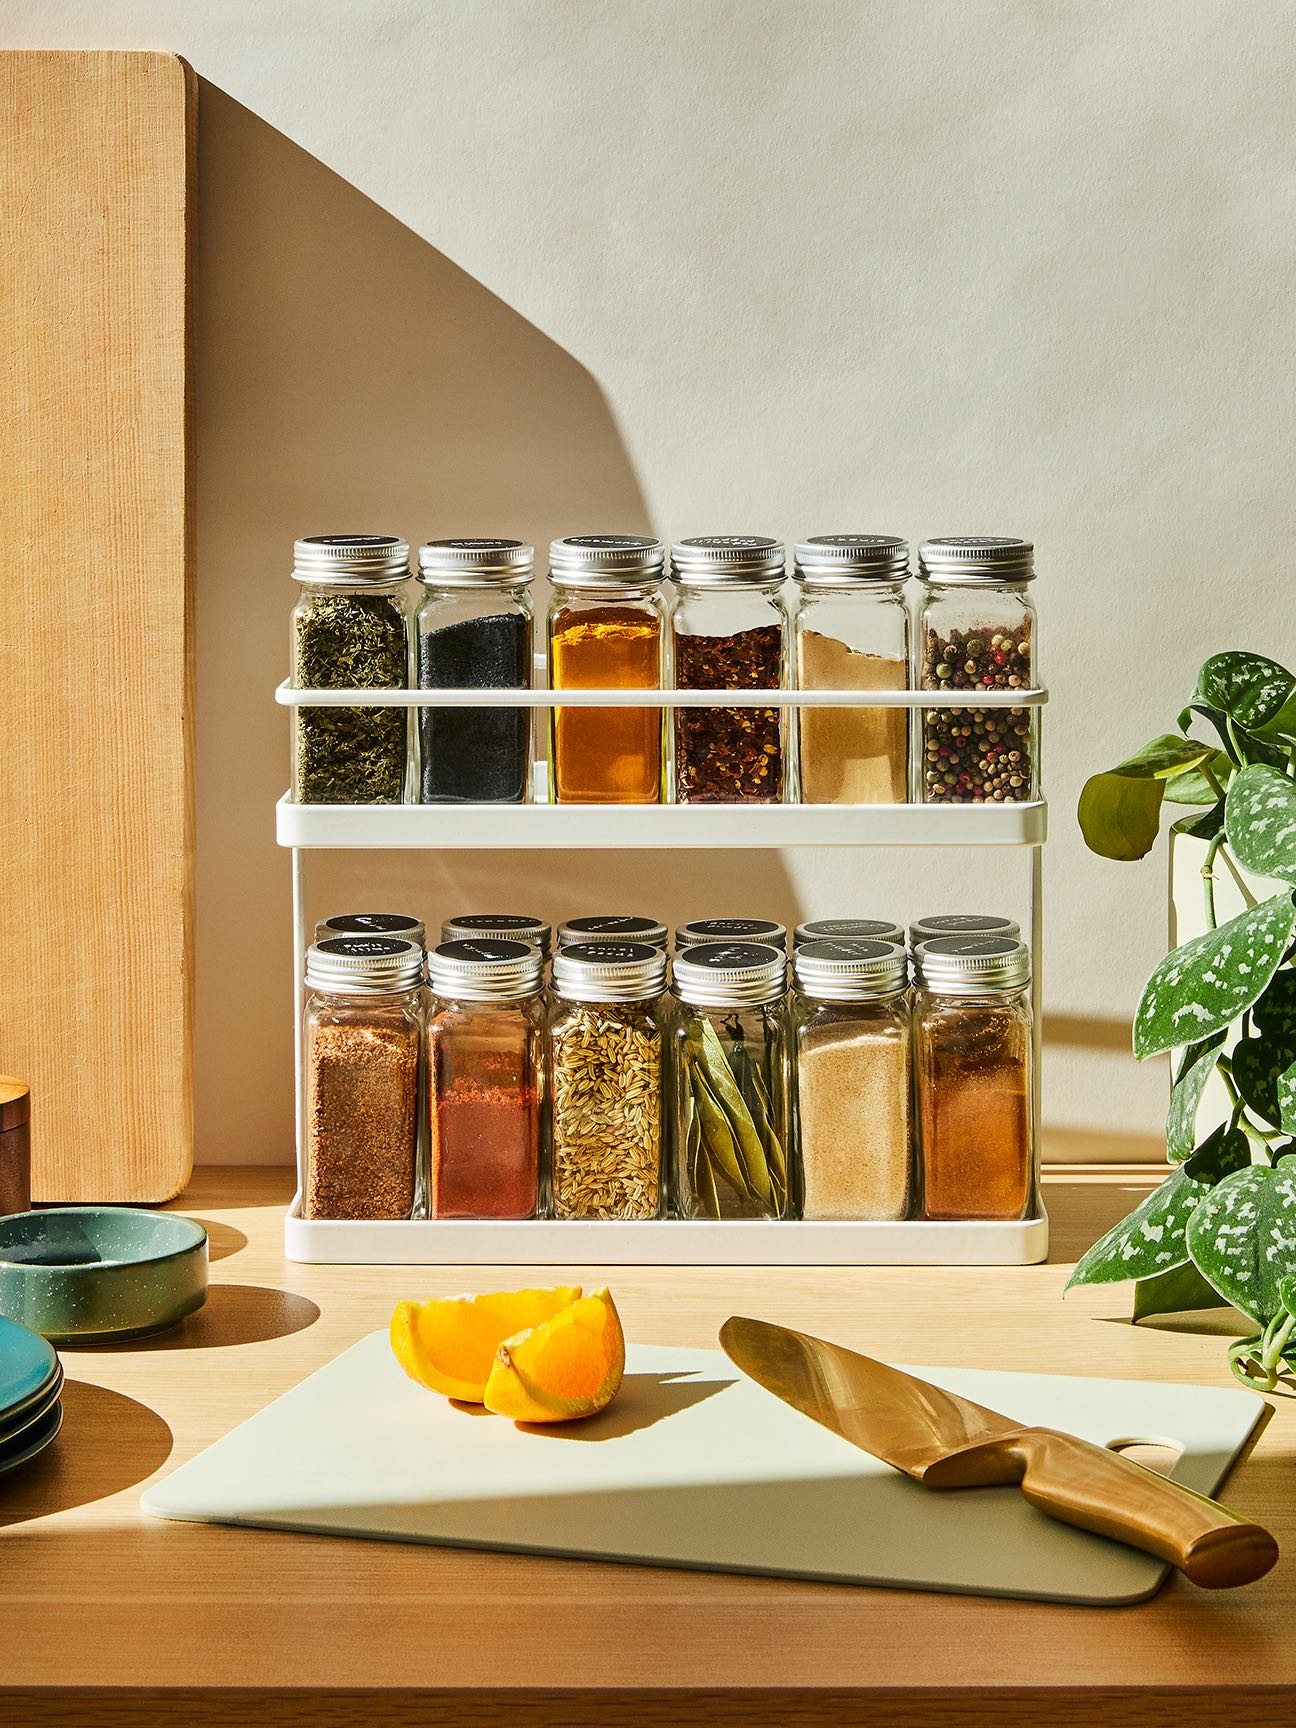 00-FEATURE-spice-shelf-tips-domino